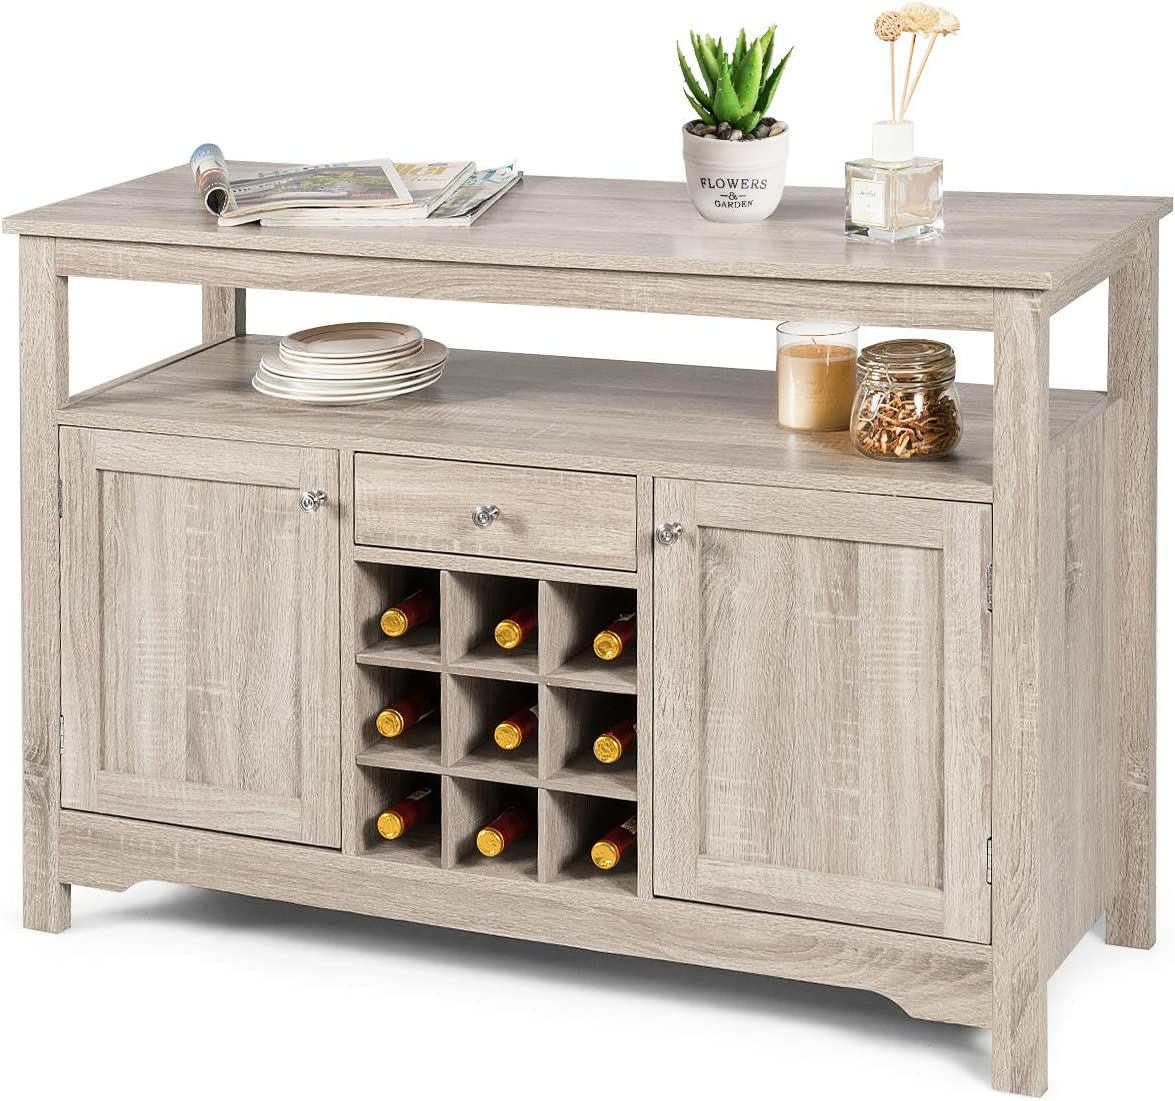 Giantex Buffet Server Sideboard, Dining Room Buffet Table With Wine Rack